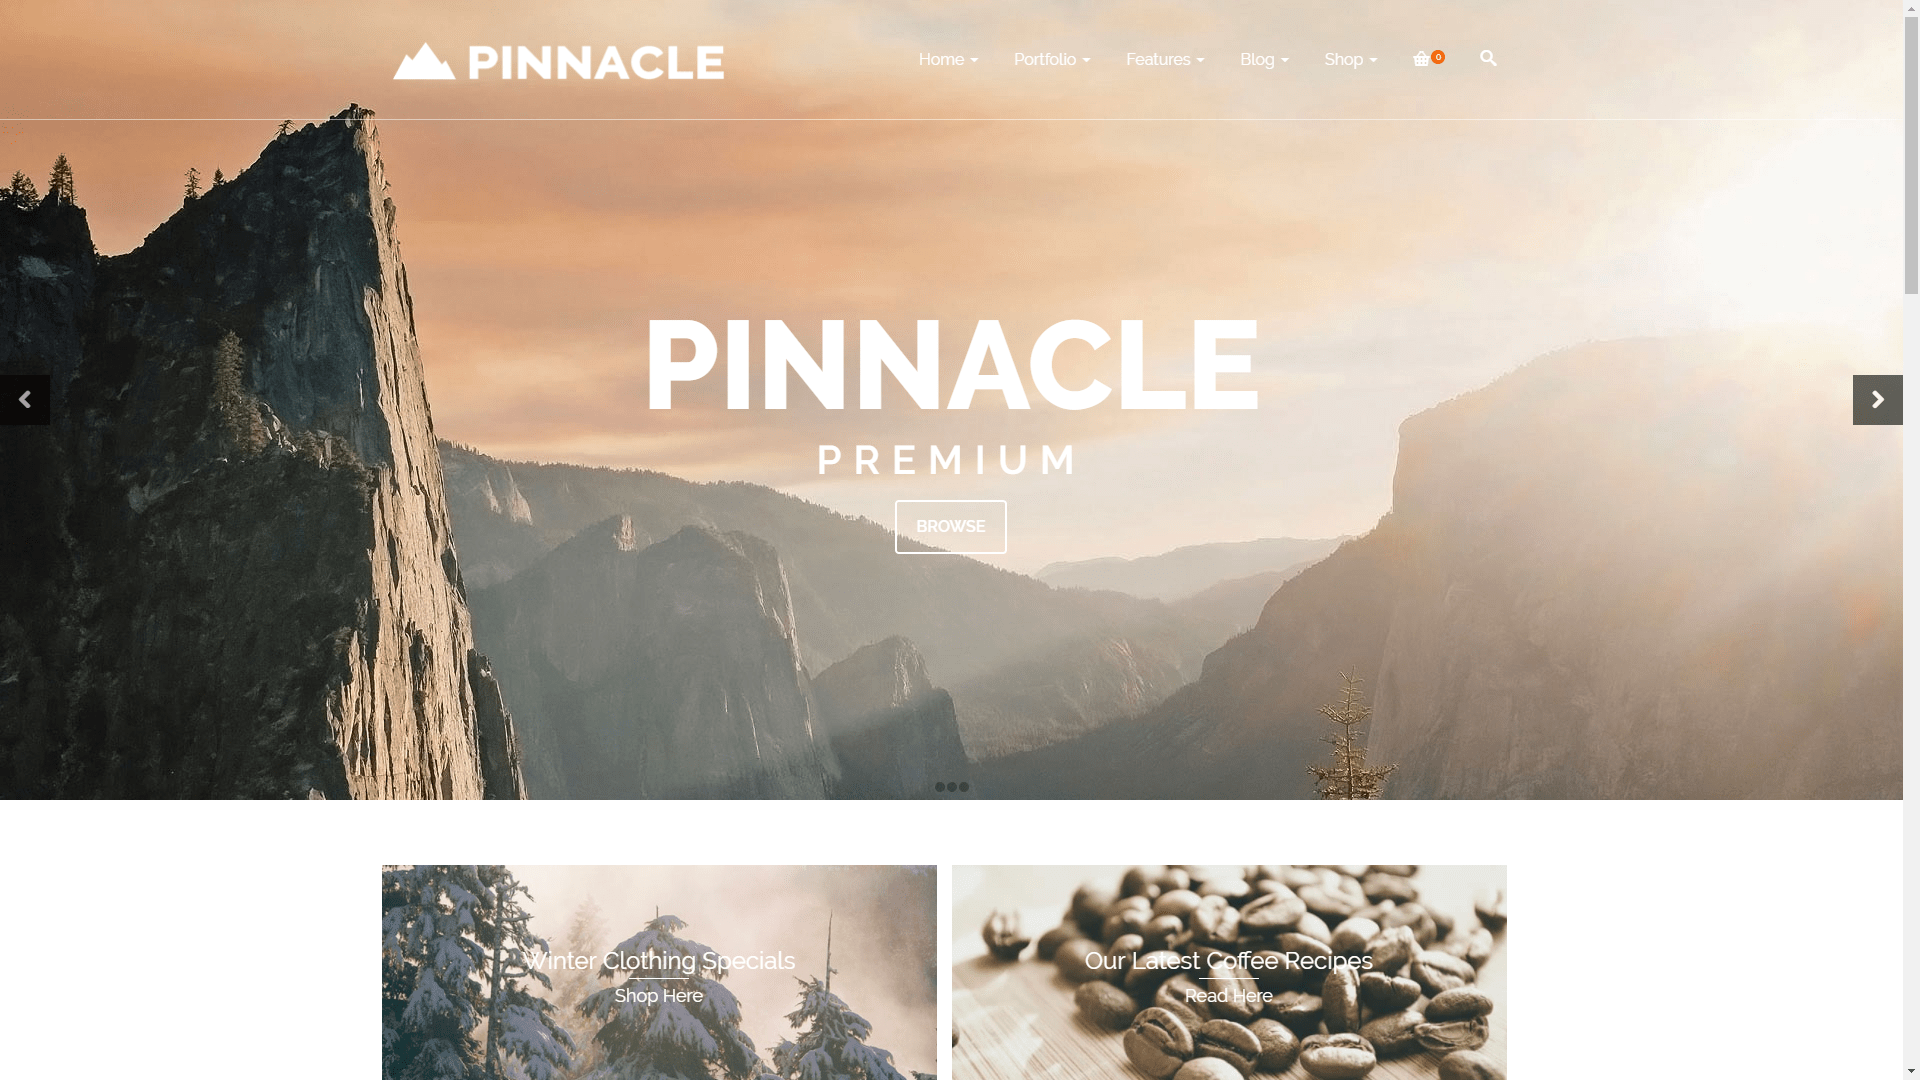 Web Design - Pinnacle Premium - Flagstaff AZ